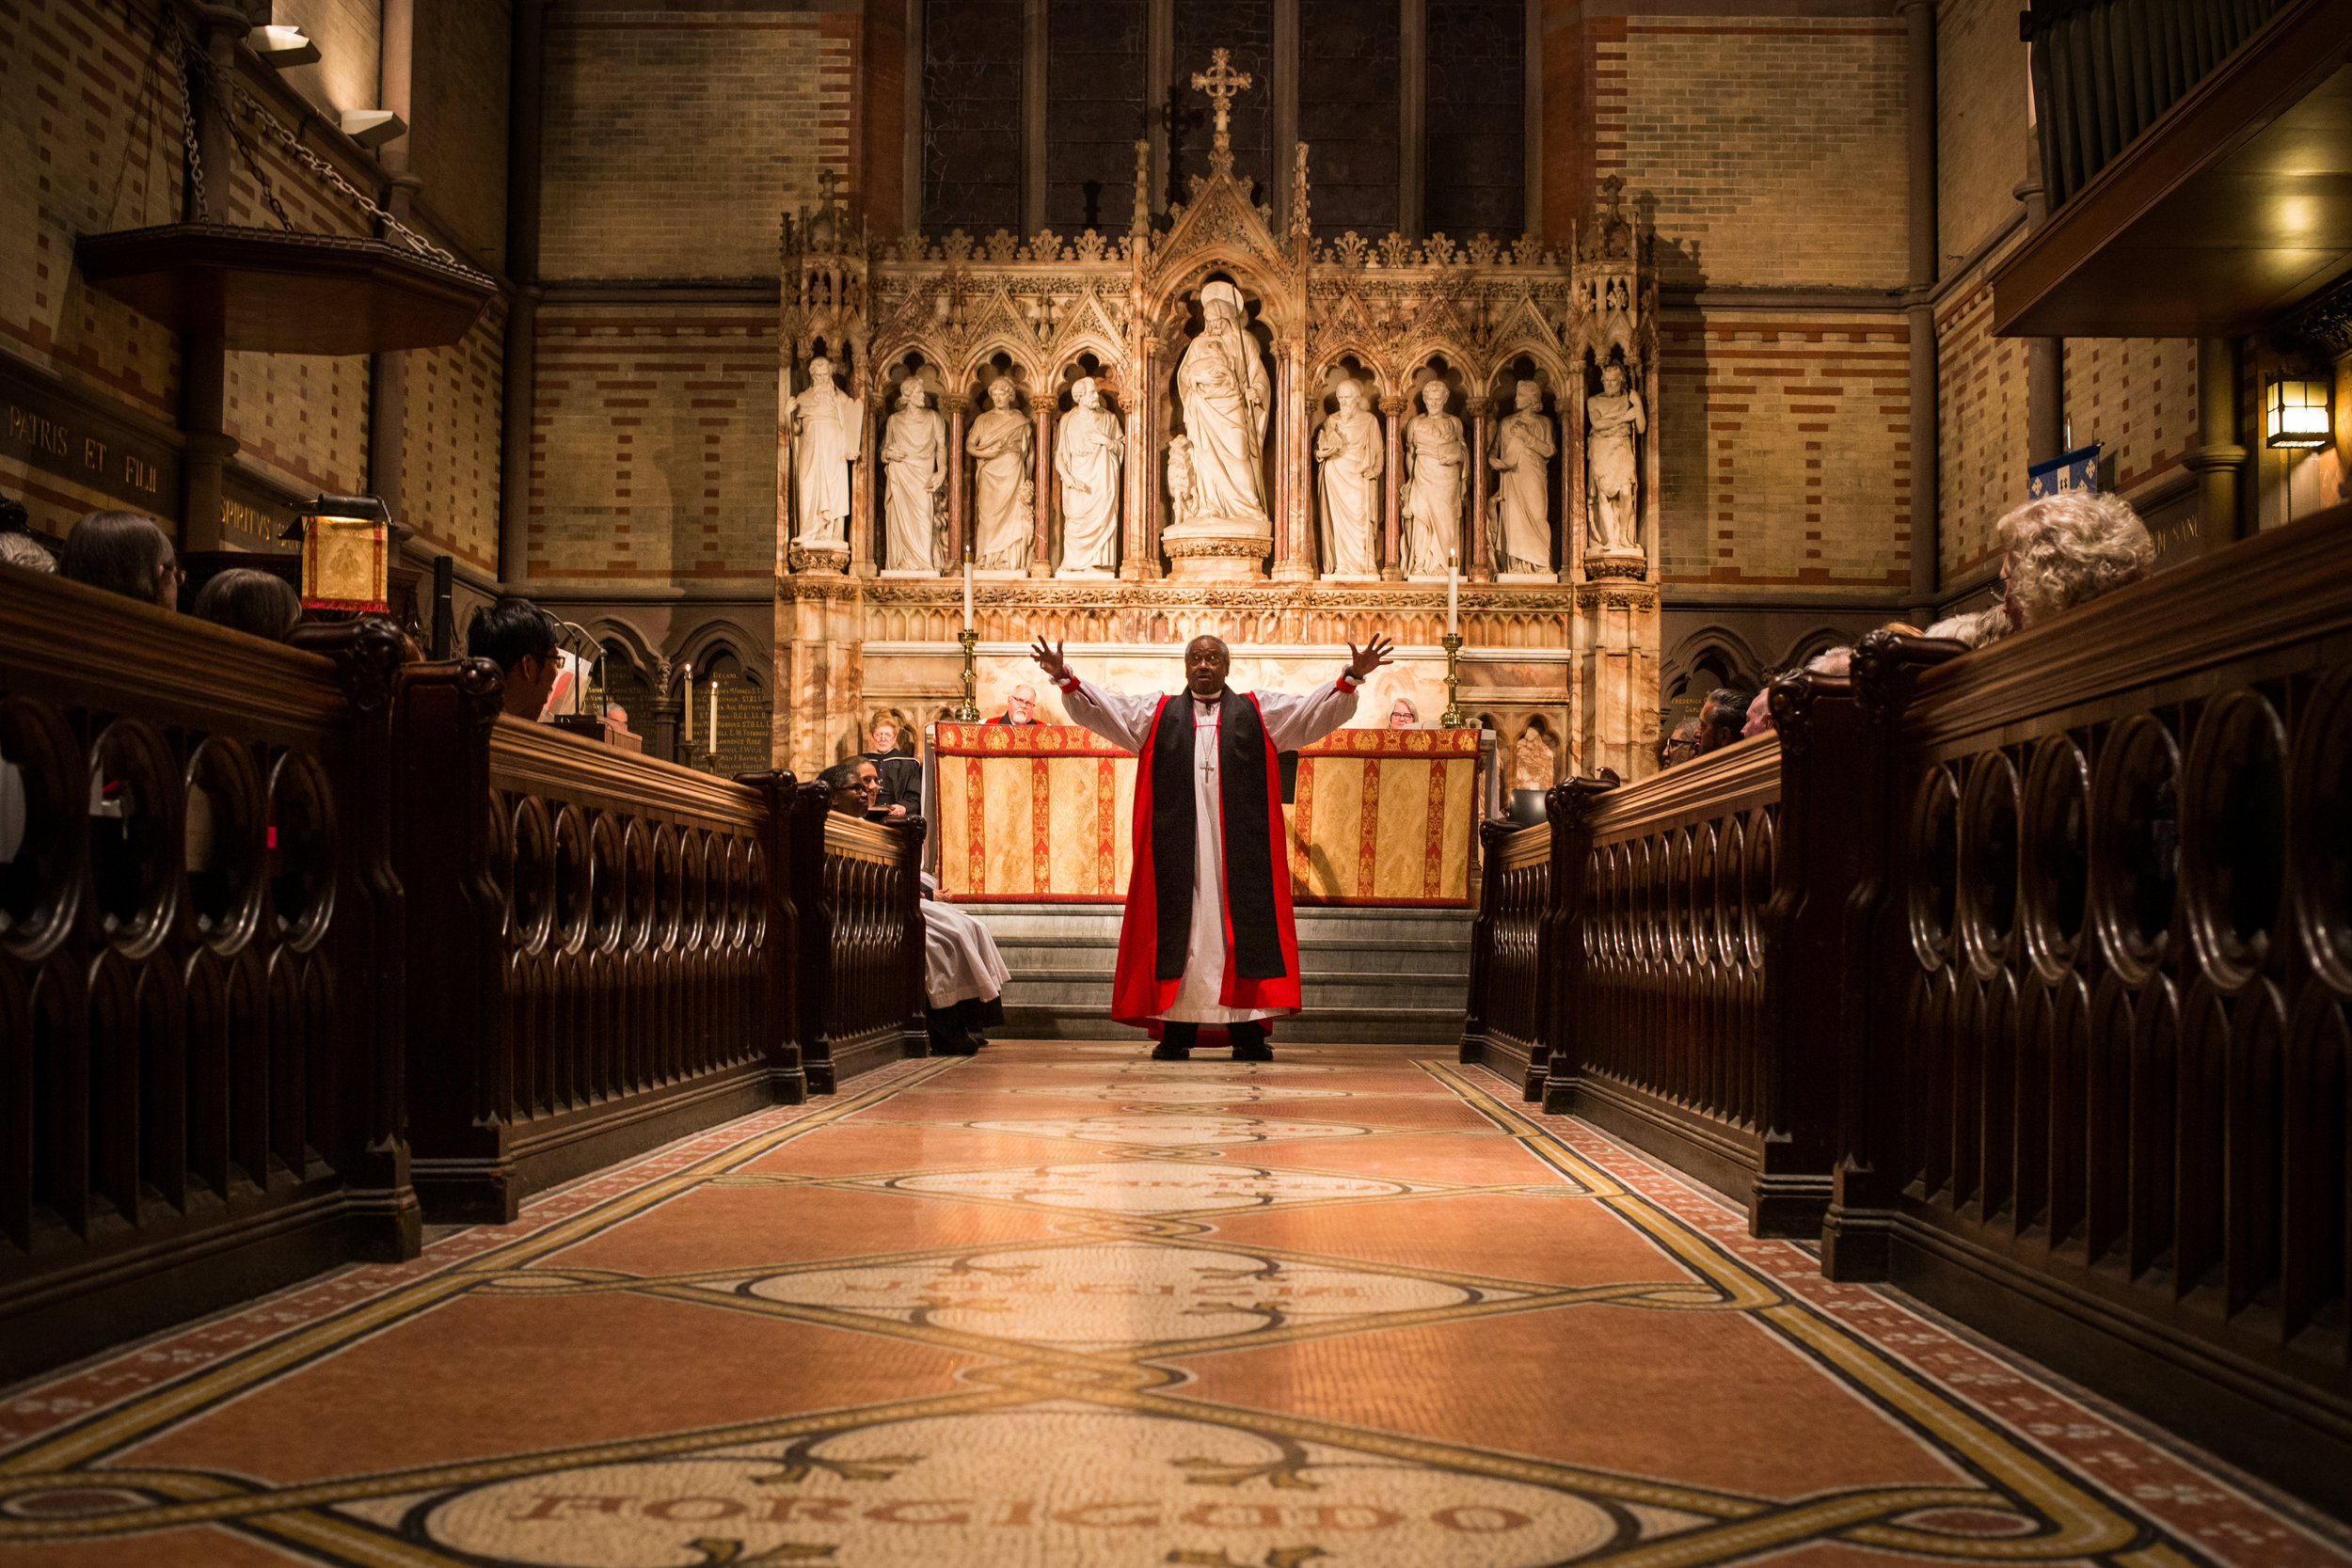 Michael Curry captivates those gathered with a plea to live the Way of Love